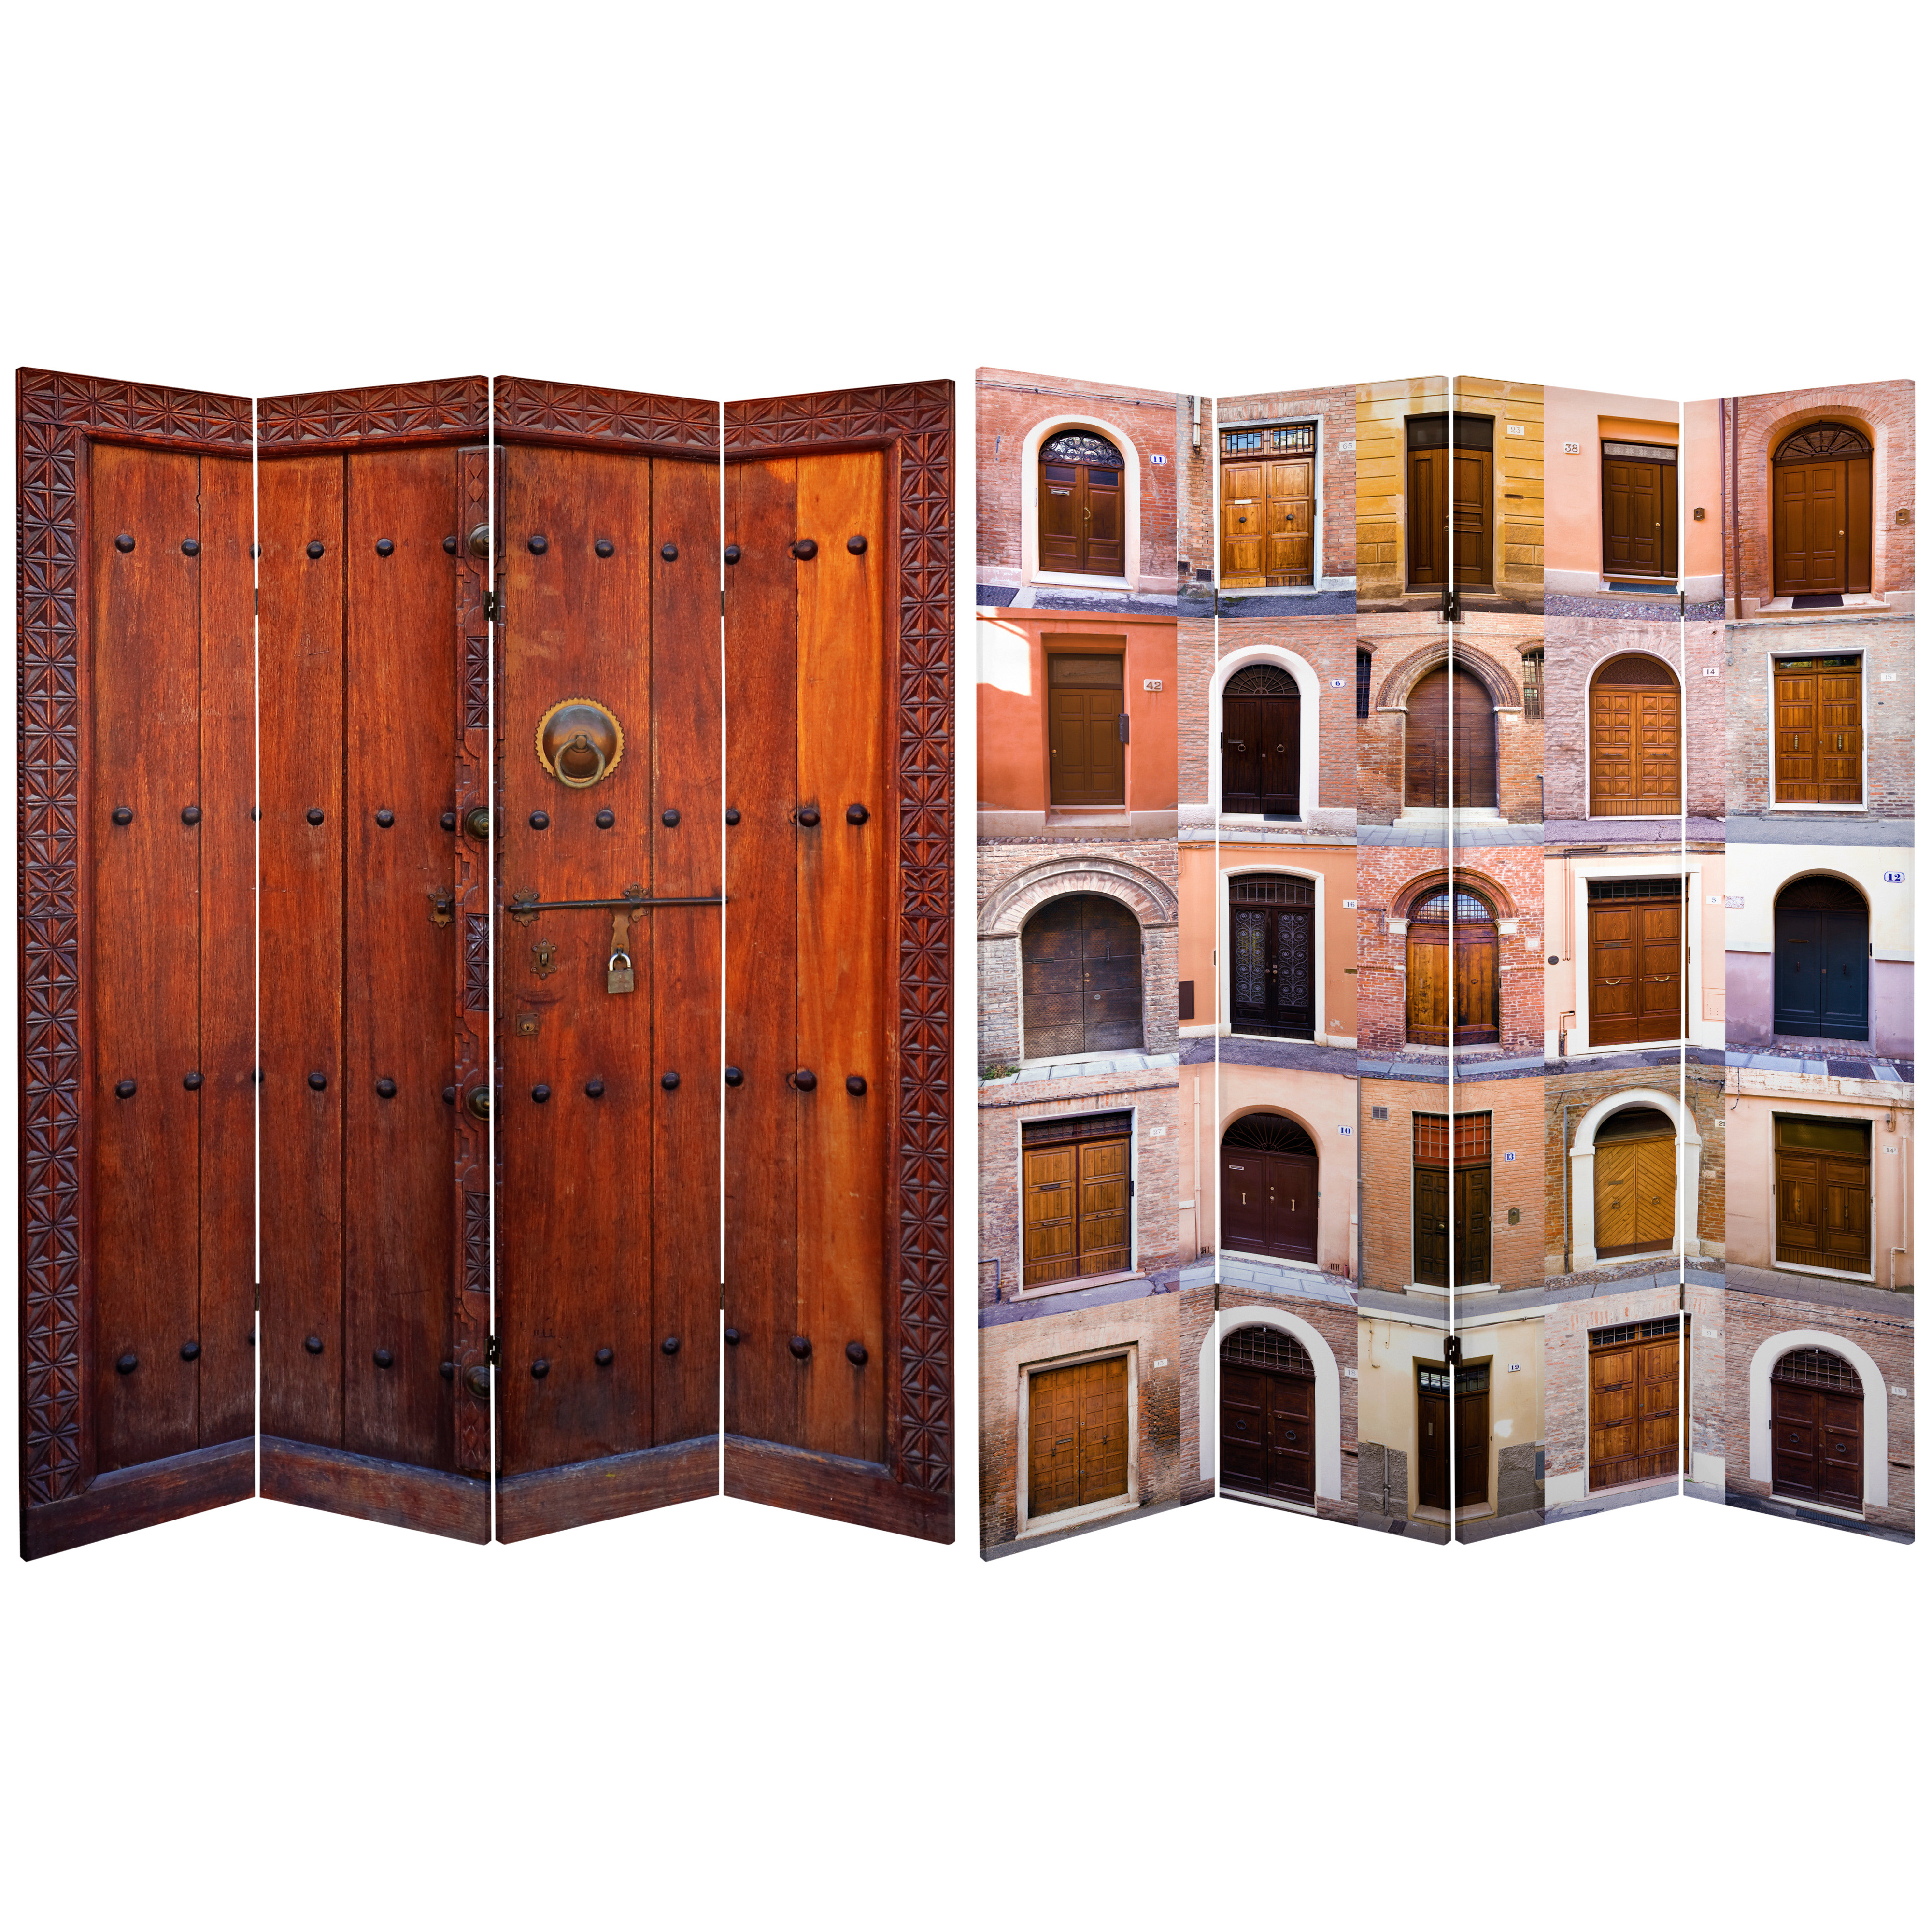 Room Dividers: Buy 6 Ft. Tall Double Sided Doors Canvas Room Divider 4